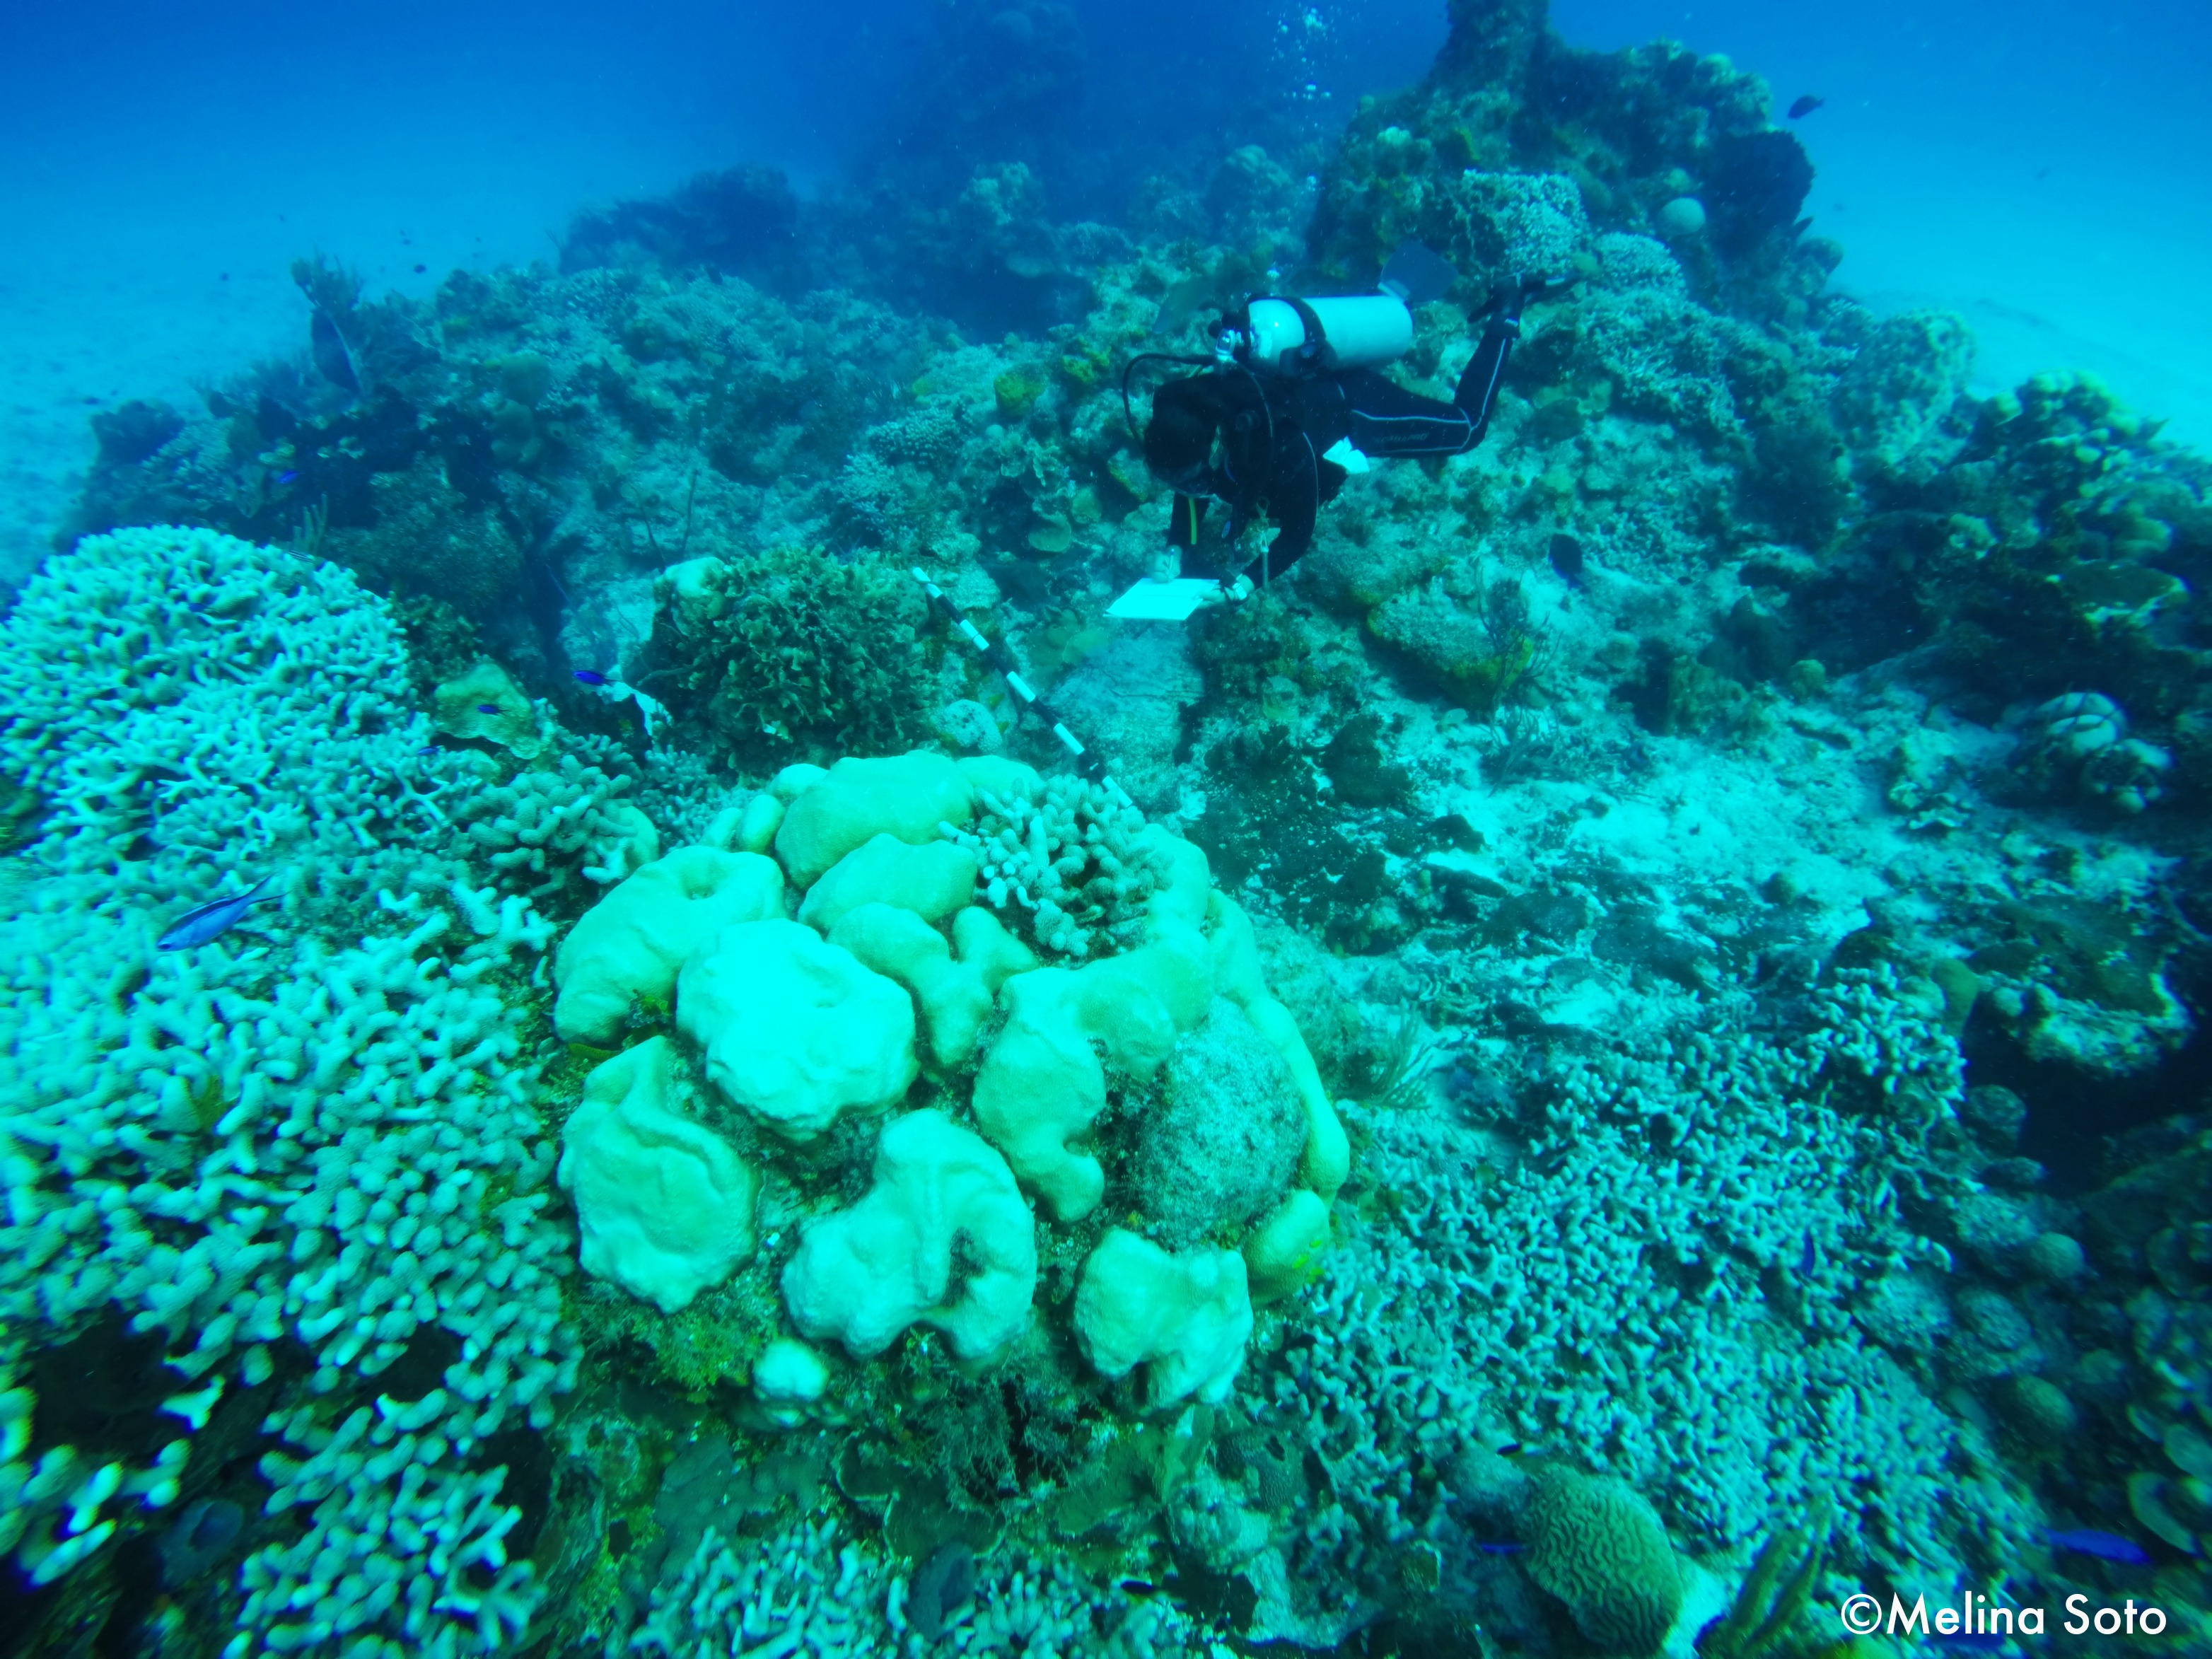 5_Climate change induce warming of the ocean's temperature impact the reefs of the world, coral bleaching has been reported in the Mesoamerican Reef every year since 2015.